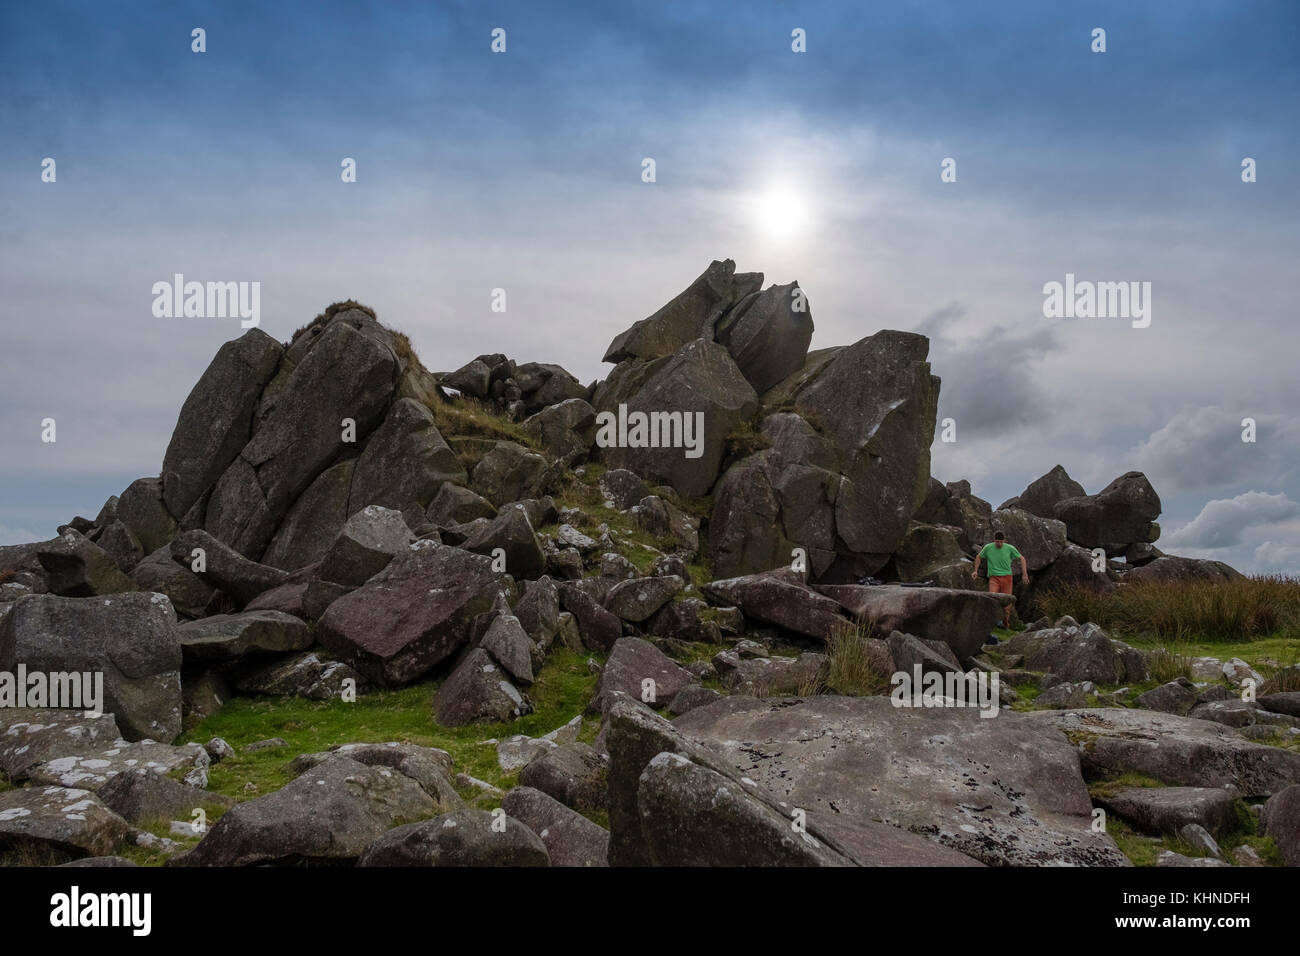 Megalithic landscapes in the UK: The jagged outlines of the Carn Menyn / Carn Meini outcrop of spotted dolerite - Stock Image